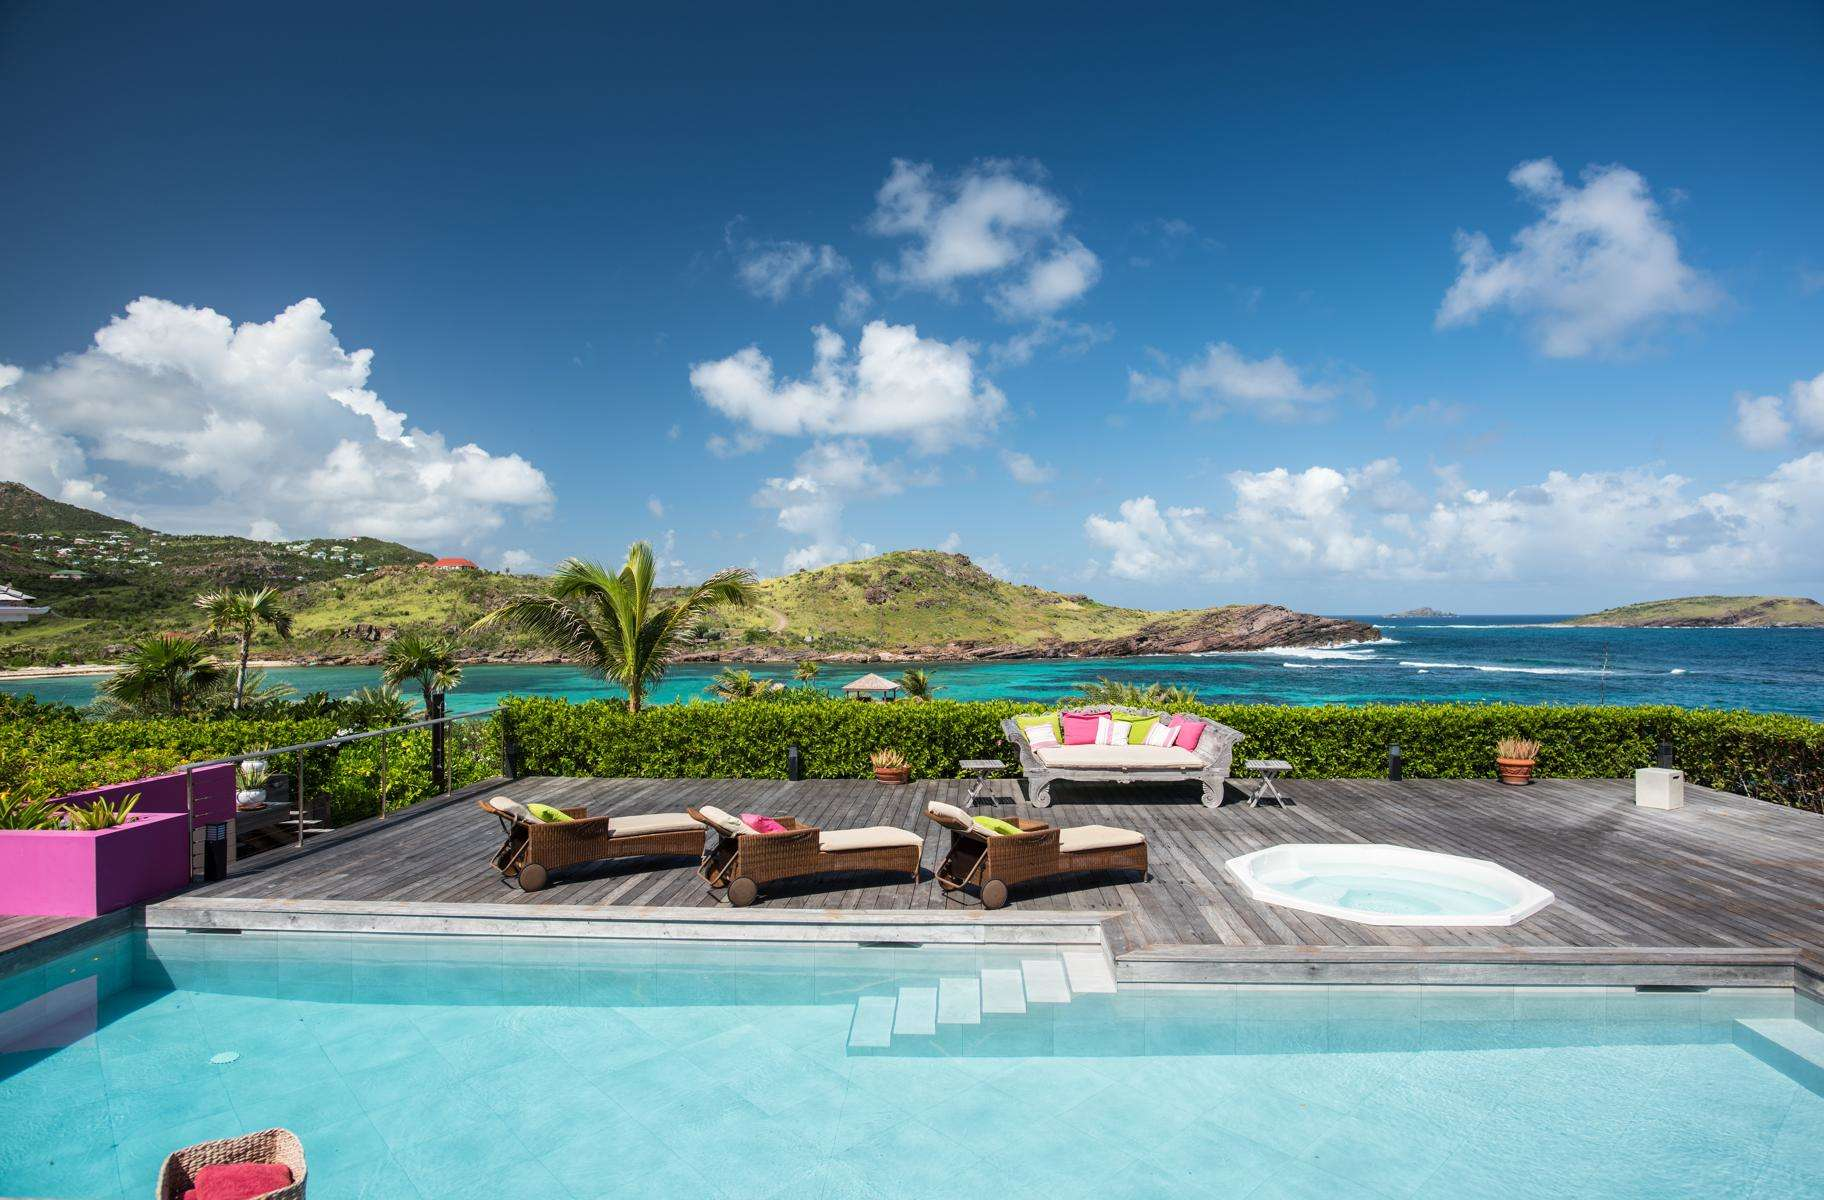 Luxury villa rentals caribbean - St barthelemy - Petit culdesac - No location 4 - la Vie en Rose - Image 1/33